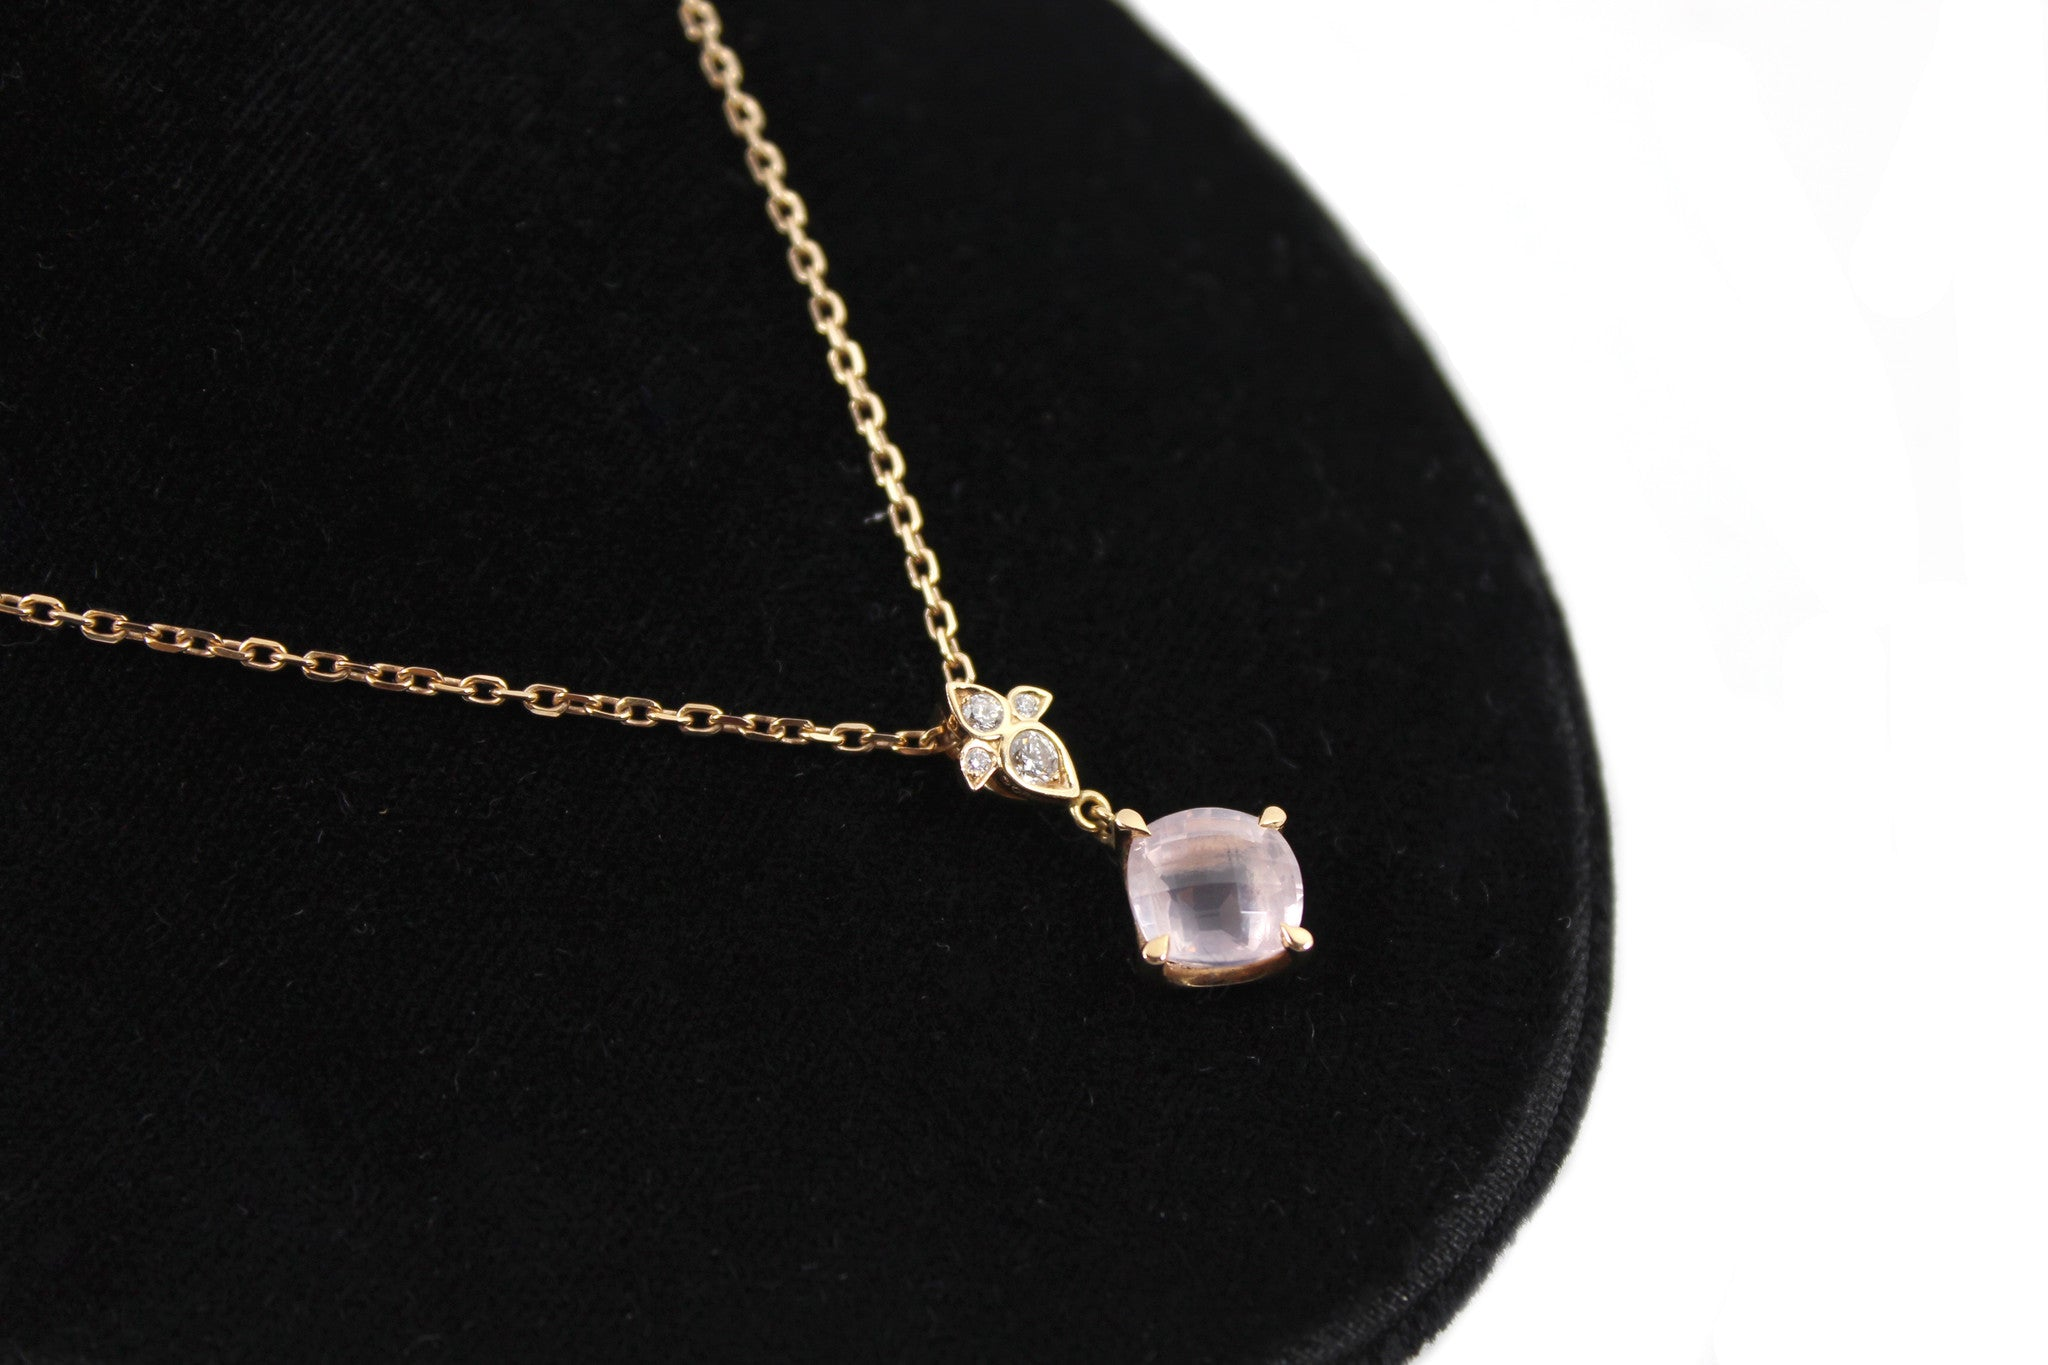 Cartier Pink Quartz & Diamond Inde Mysterieuse 'Lotus' 18k Gold Chain Necklace